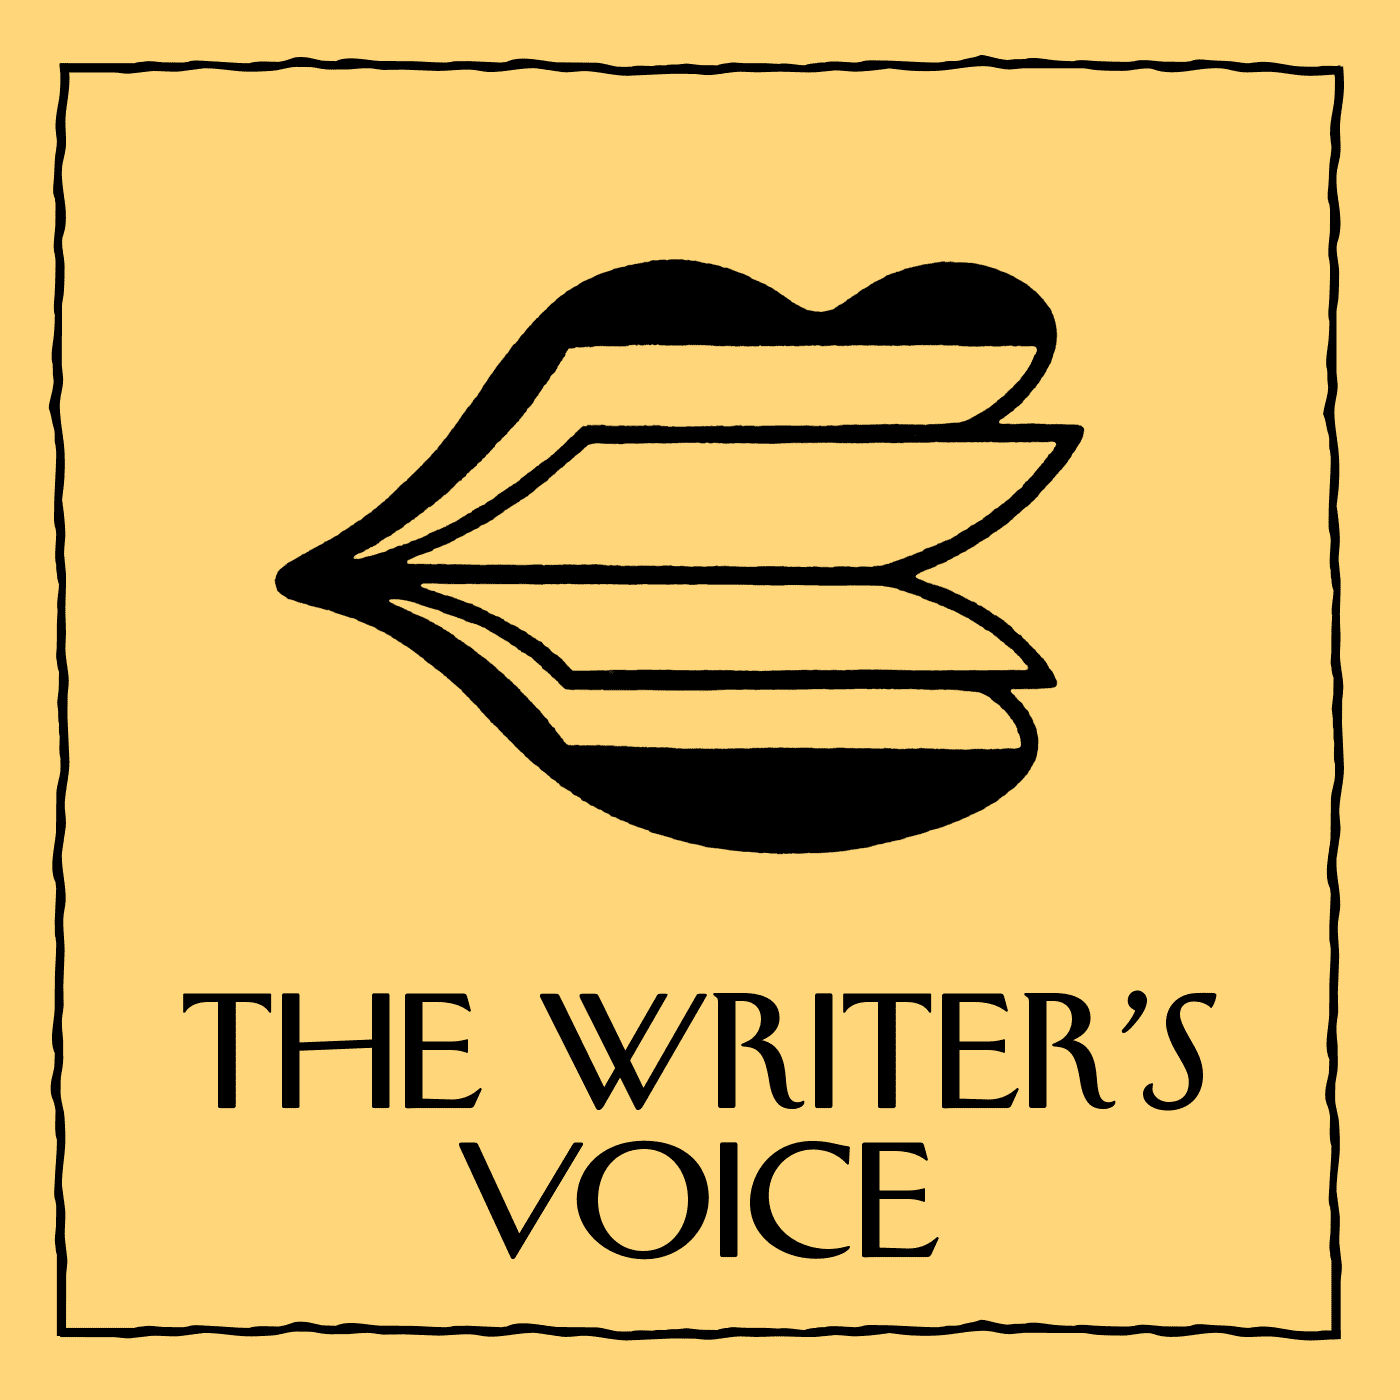 The_Writers_Voice_1400x1400 (1).png